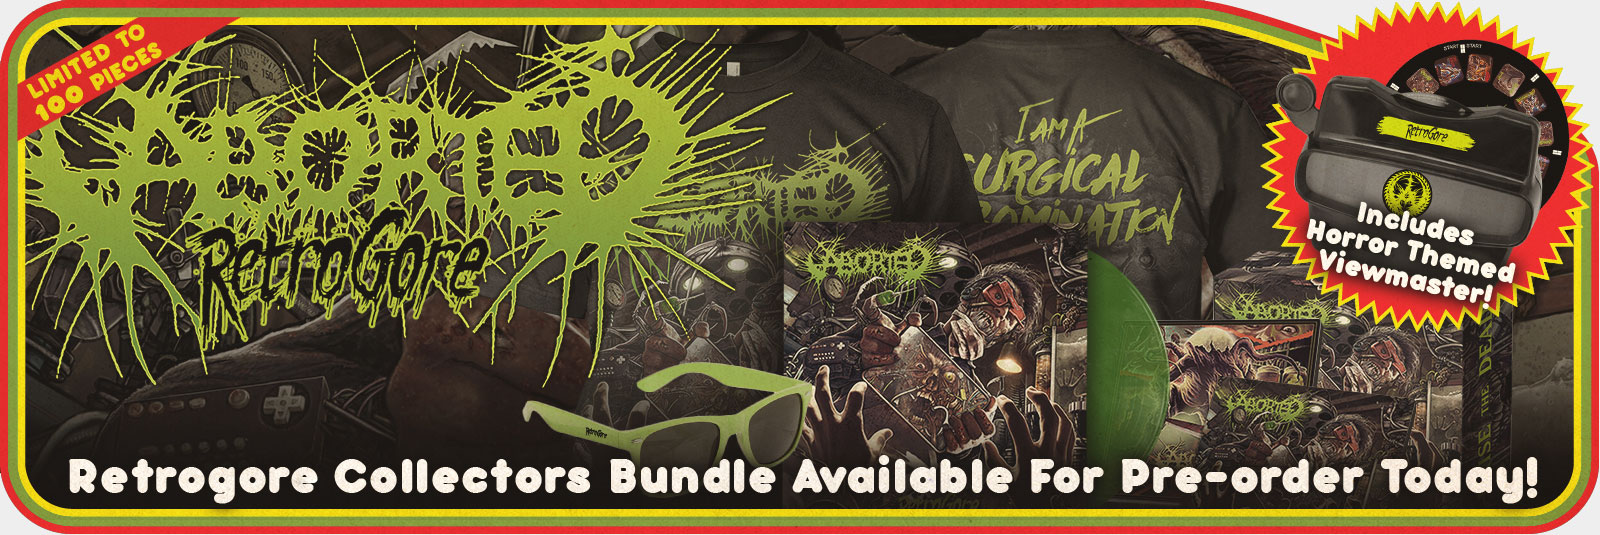 Aborted Pre-orders